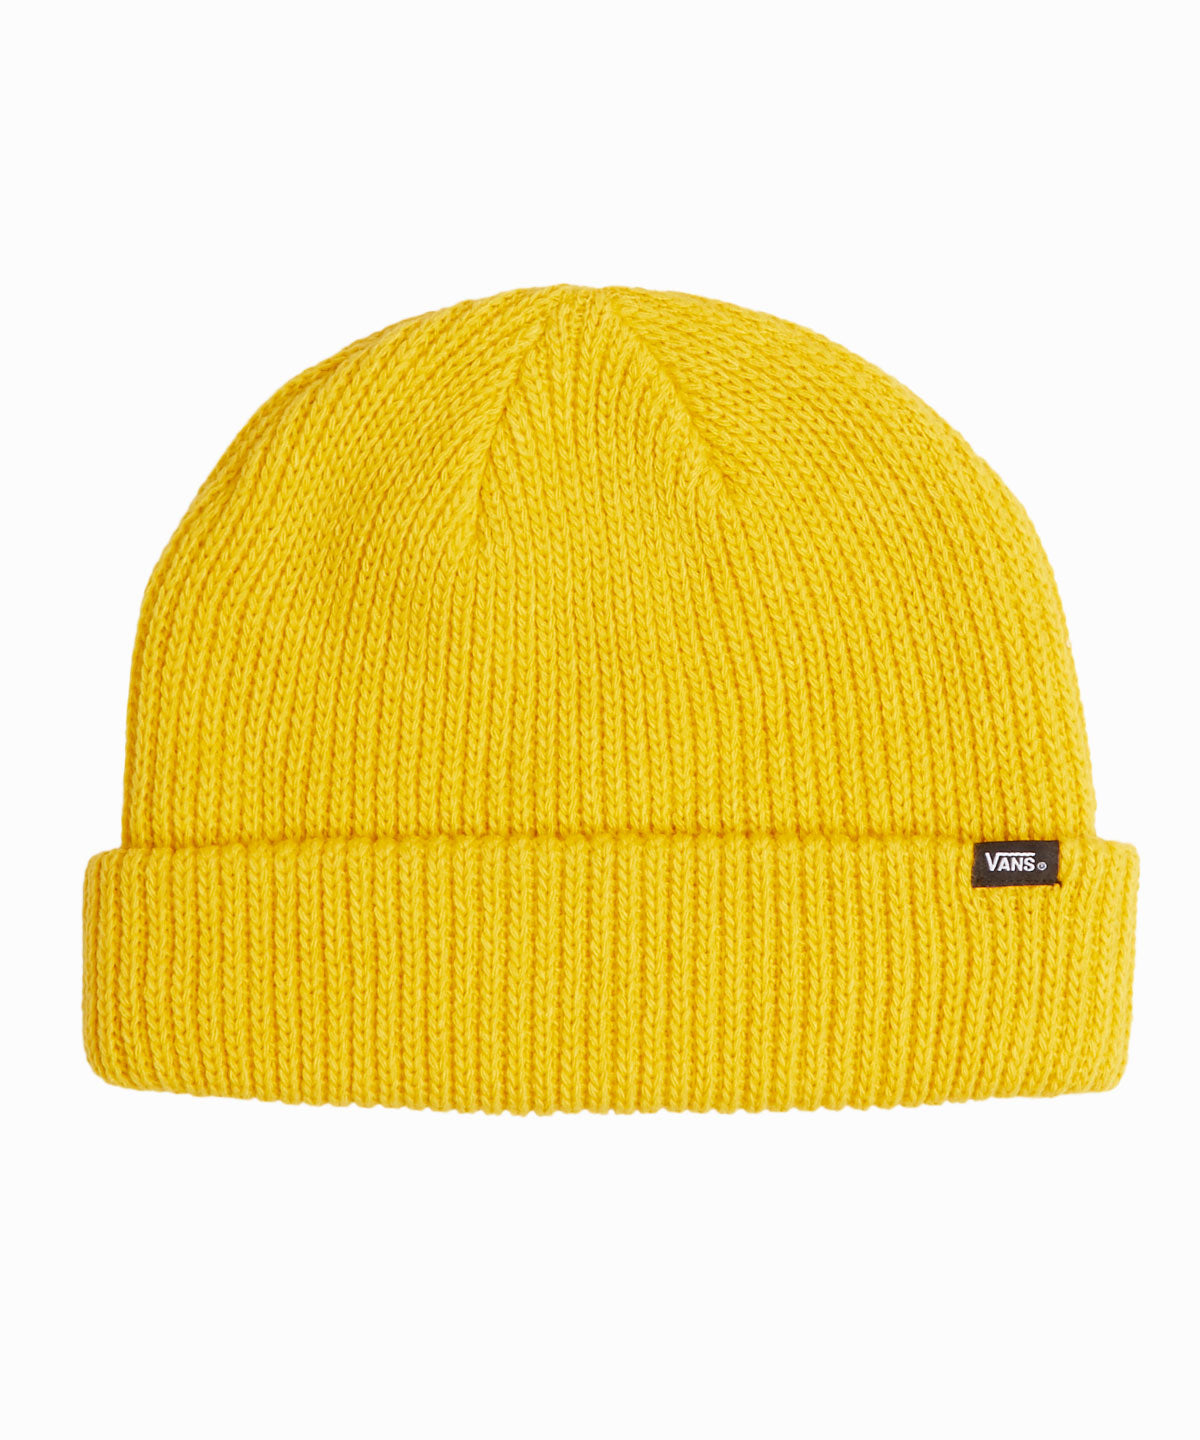 Core Basic Beanie Hat